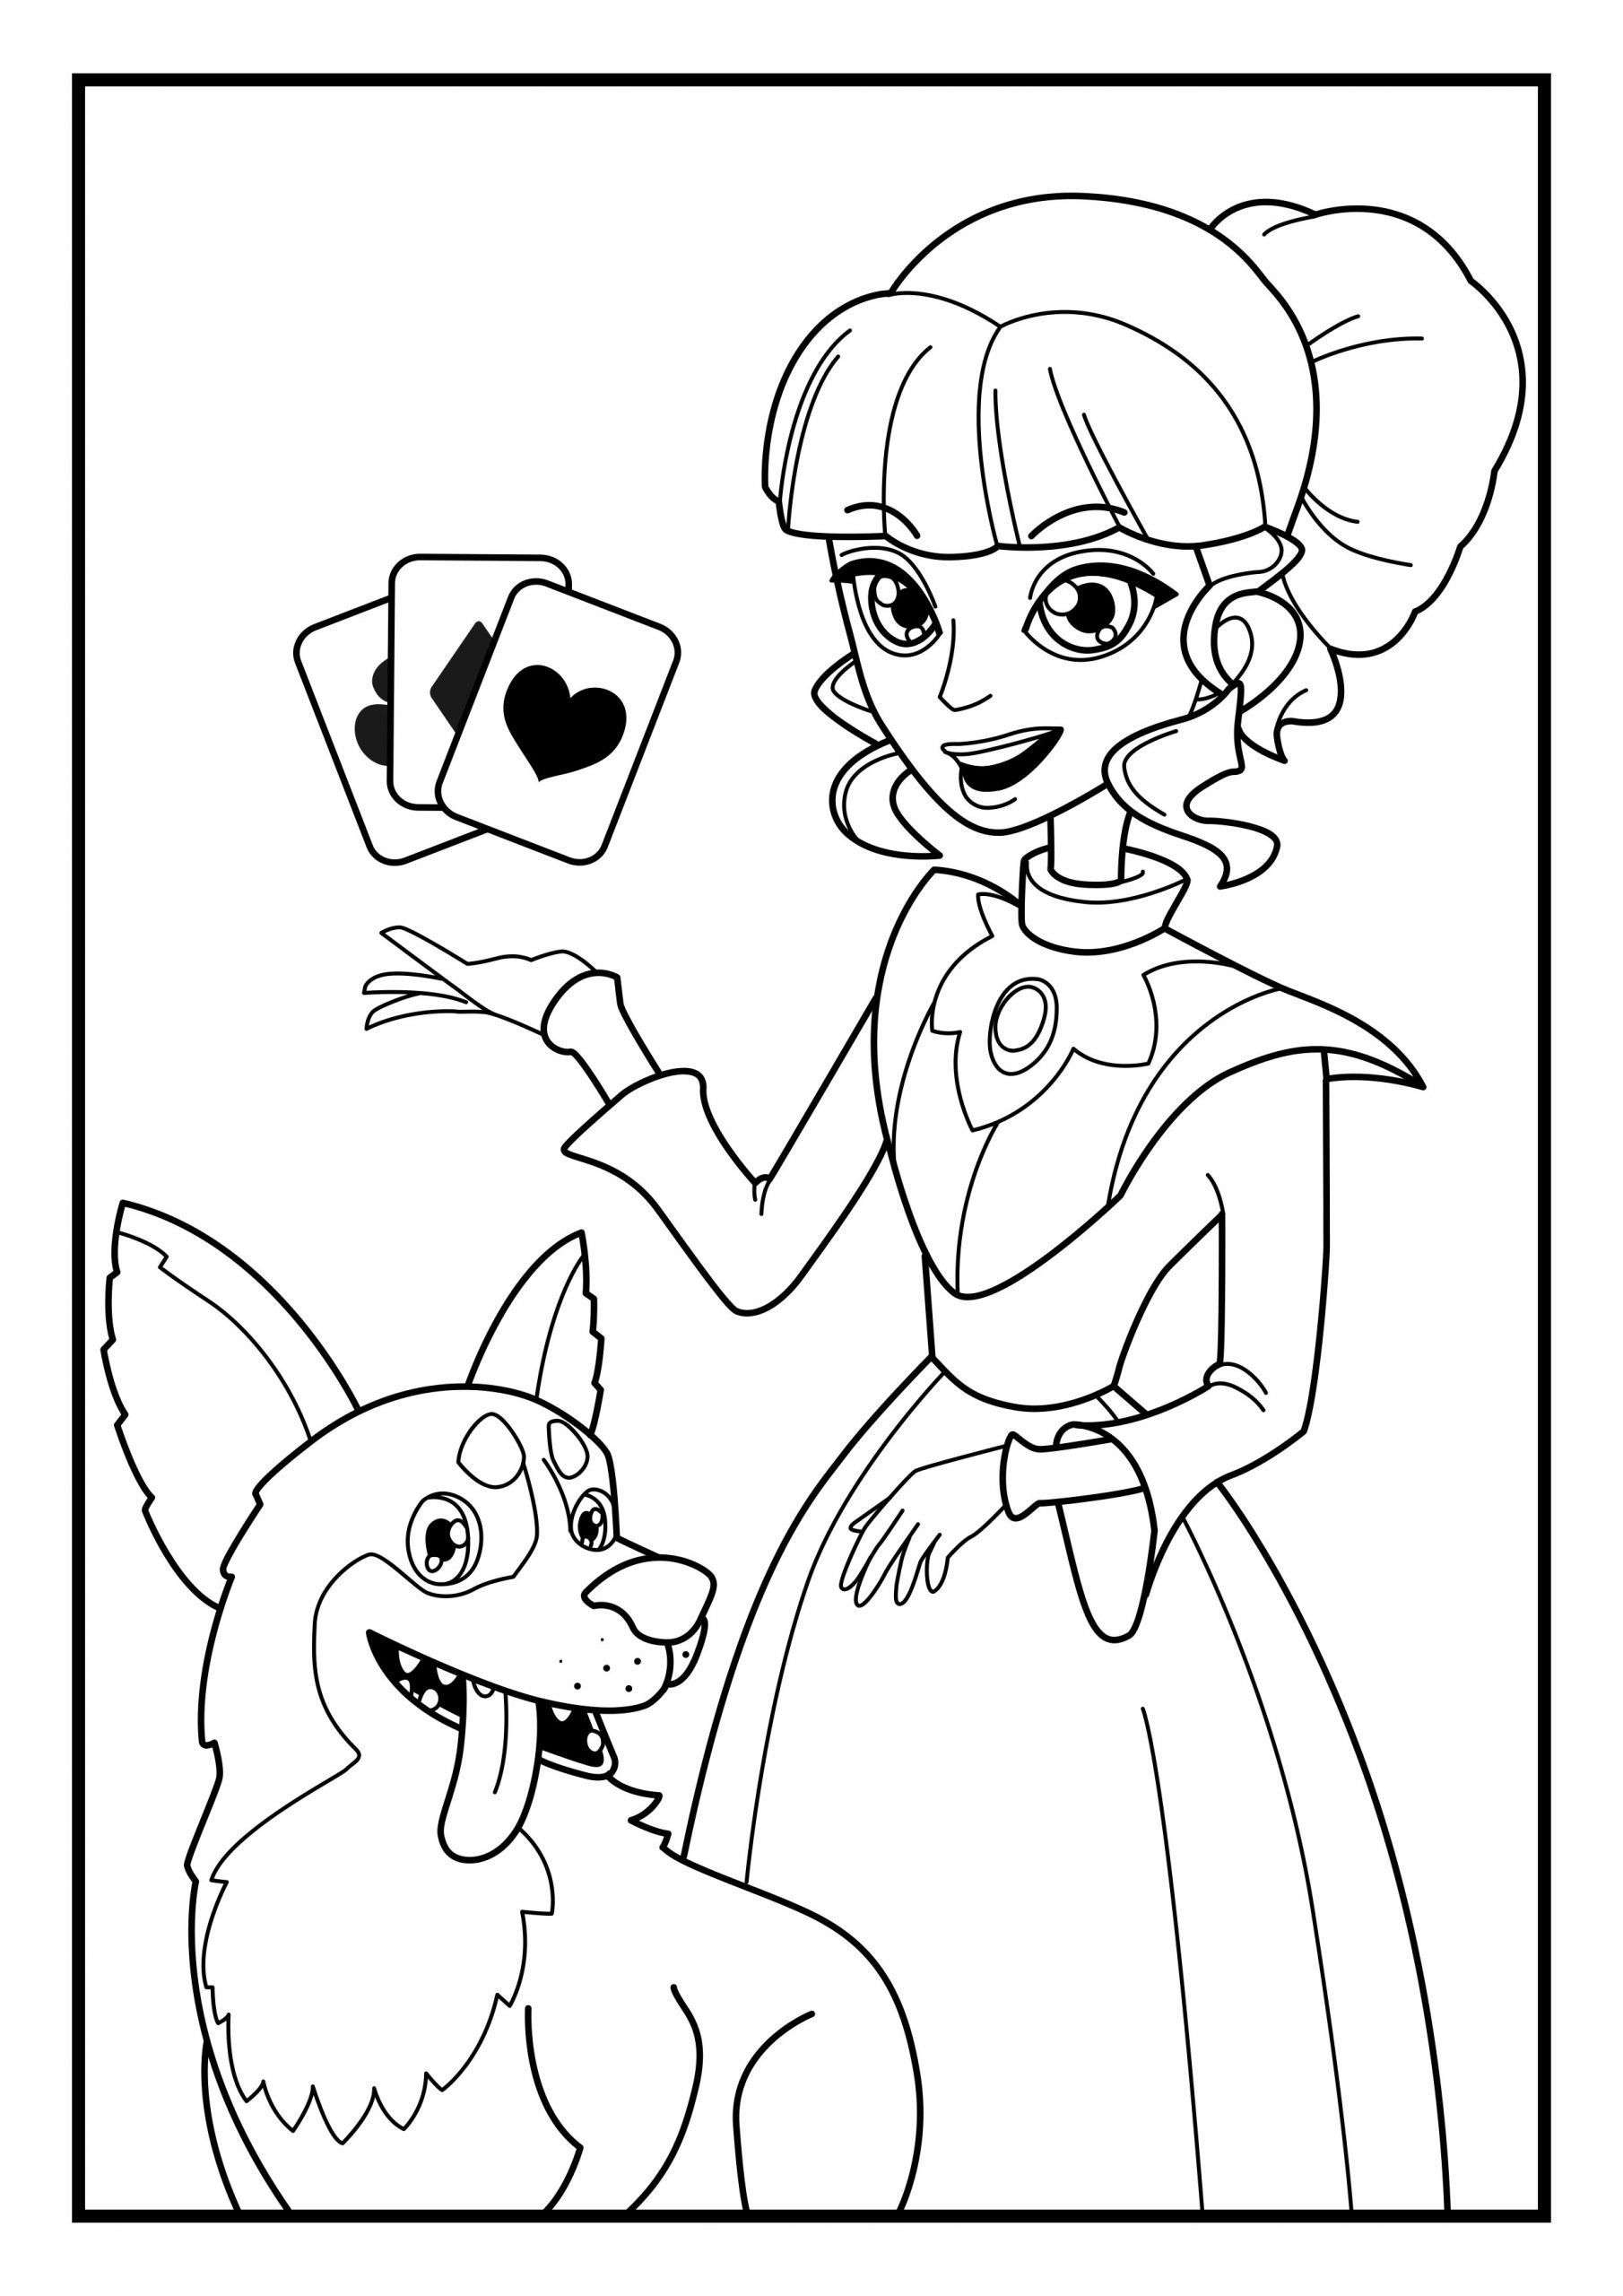 Coloring Page Dog Lizzy